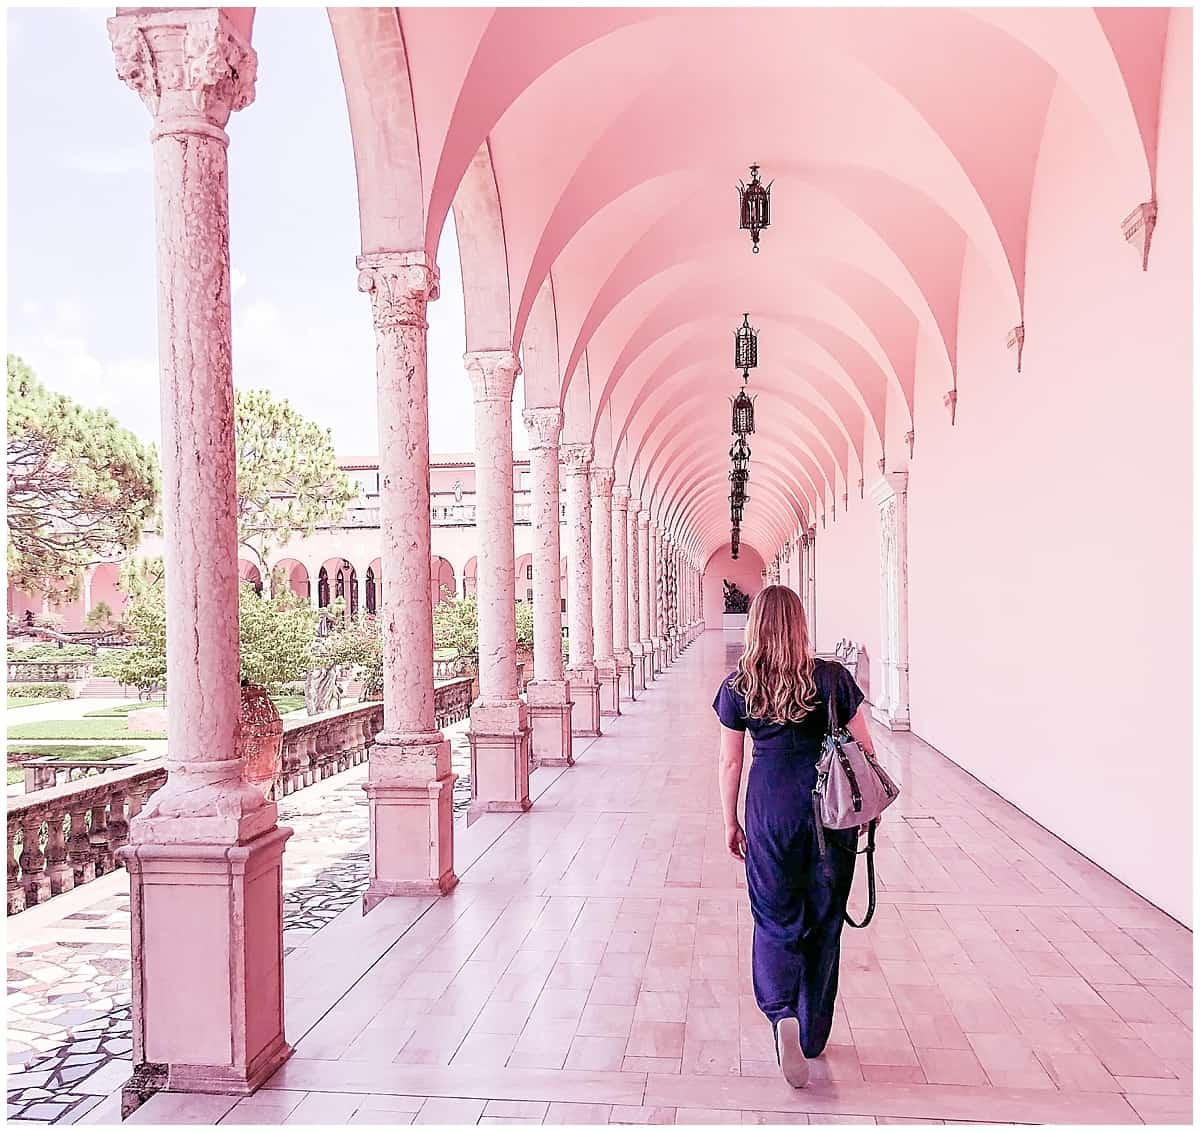 Walking through the arches at the Ringling in Florida